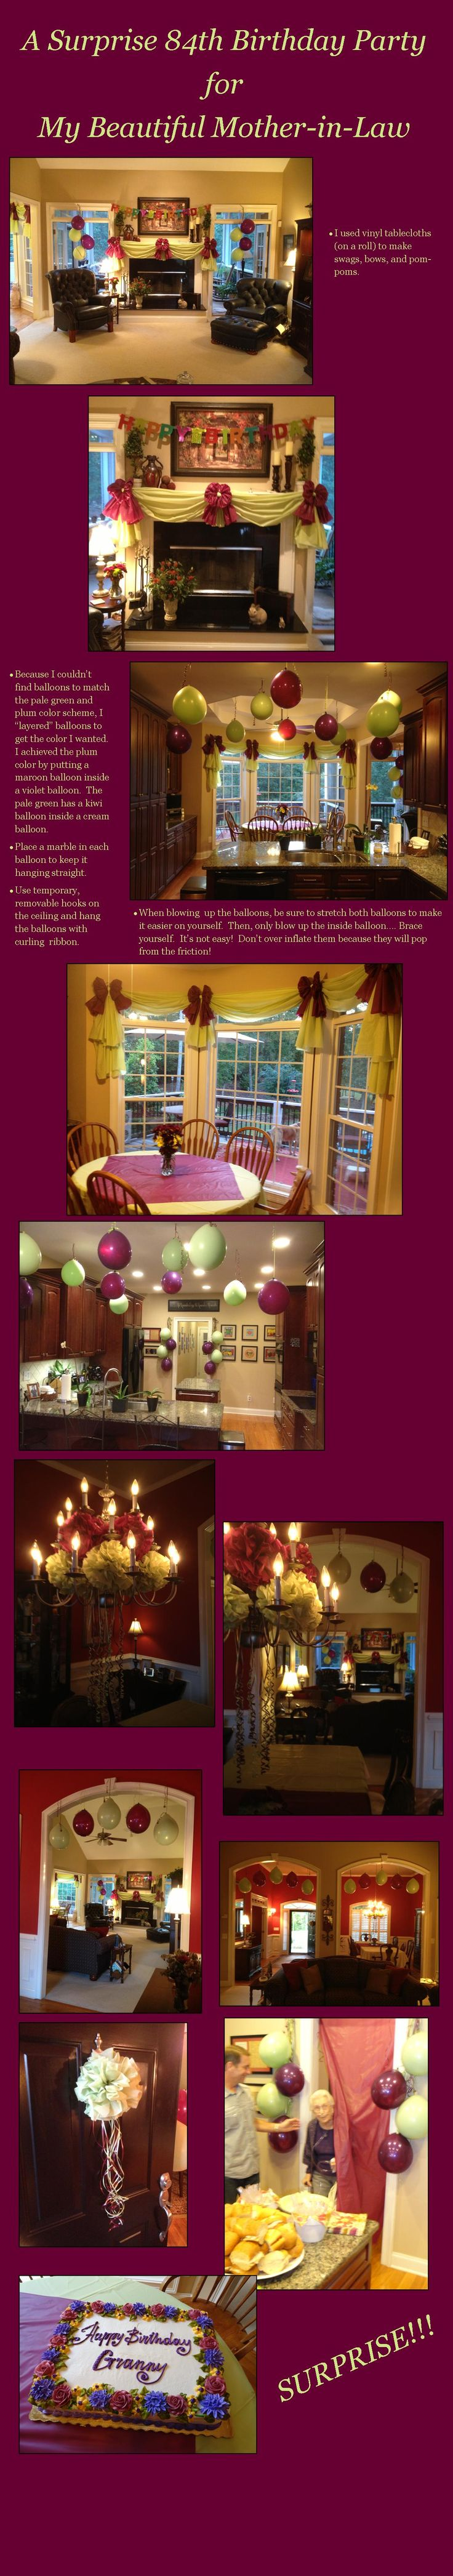 Decorating ideas for a Surprise Birthday party for an adult.  Swags, Bows and Pom-poms made from vinyl tablecloths.  Custom color balloons.  Fun colors for a fall party!